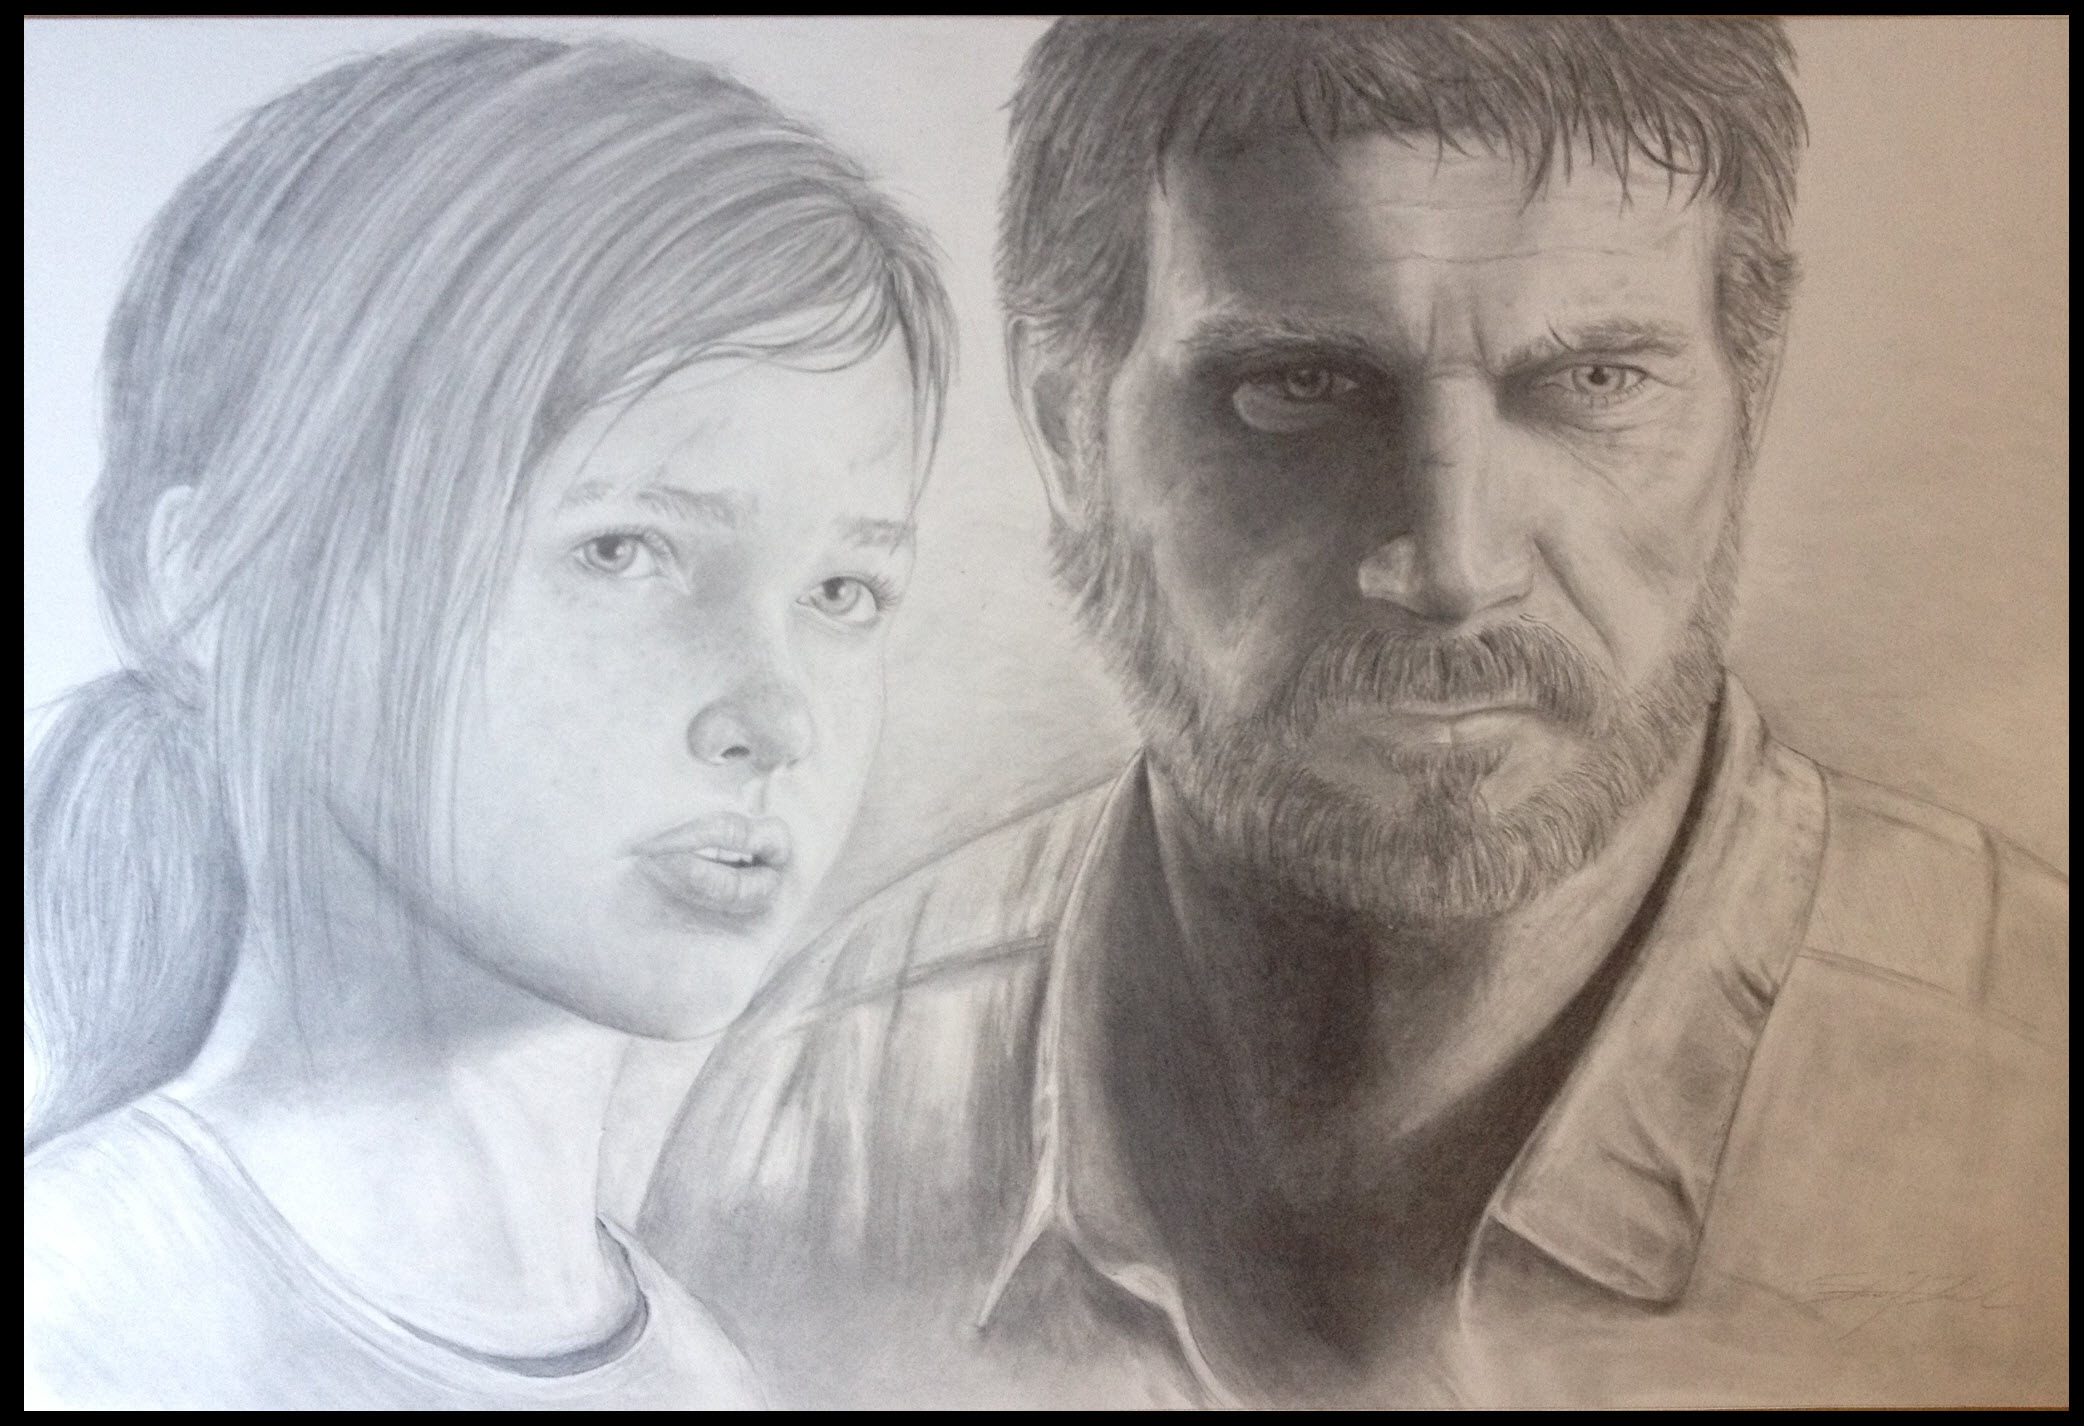 The Last of Us Journey Through 2014